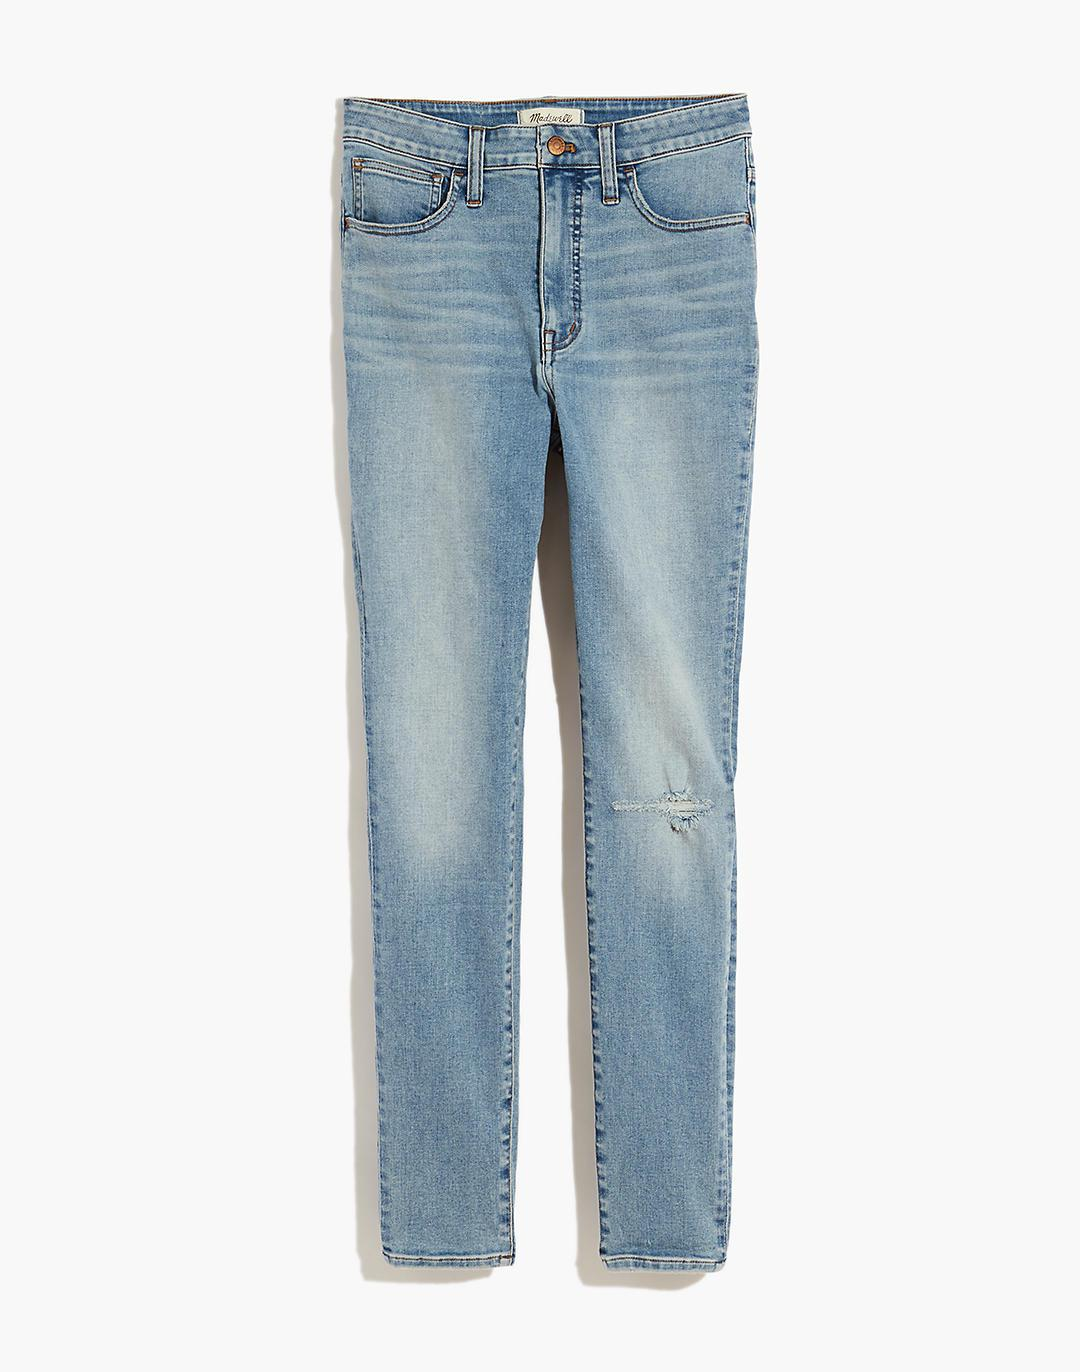 Curvy Roadtripper Authentic Jeans in Benton Wash: Knee-Rip Edition 4